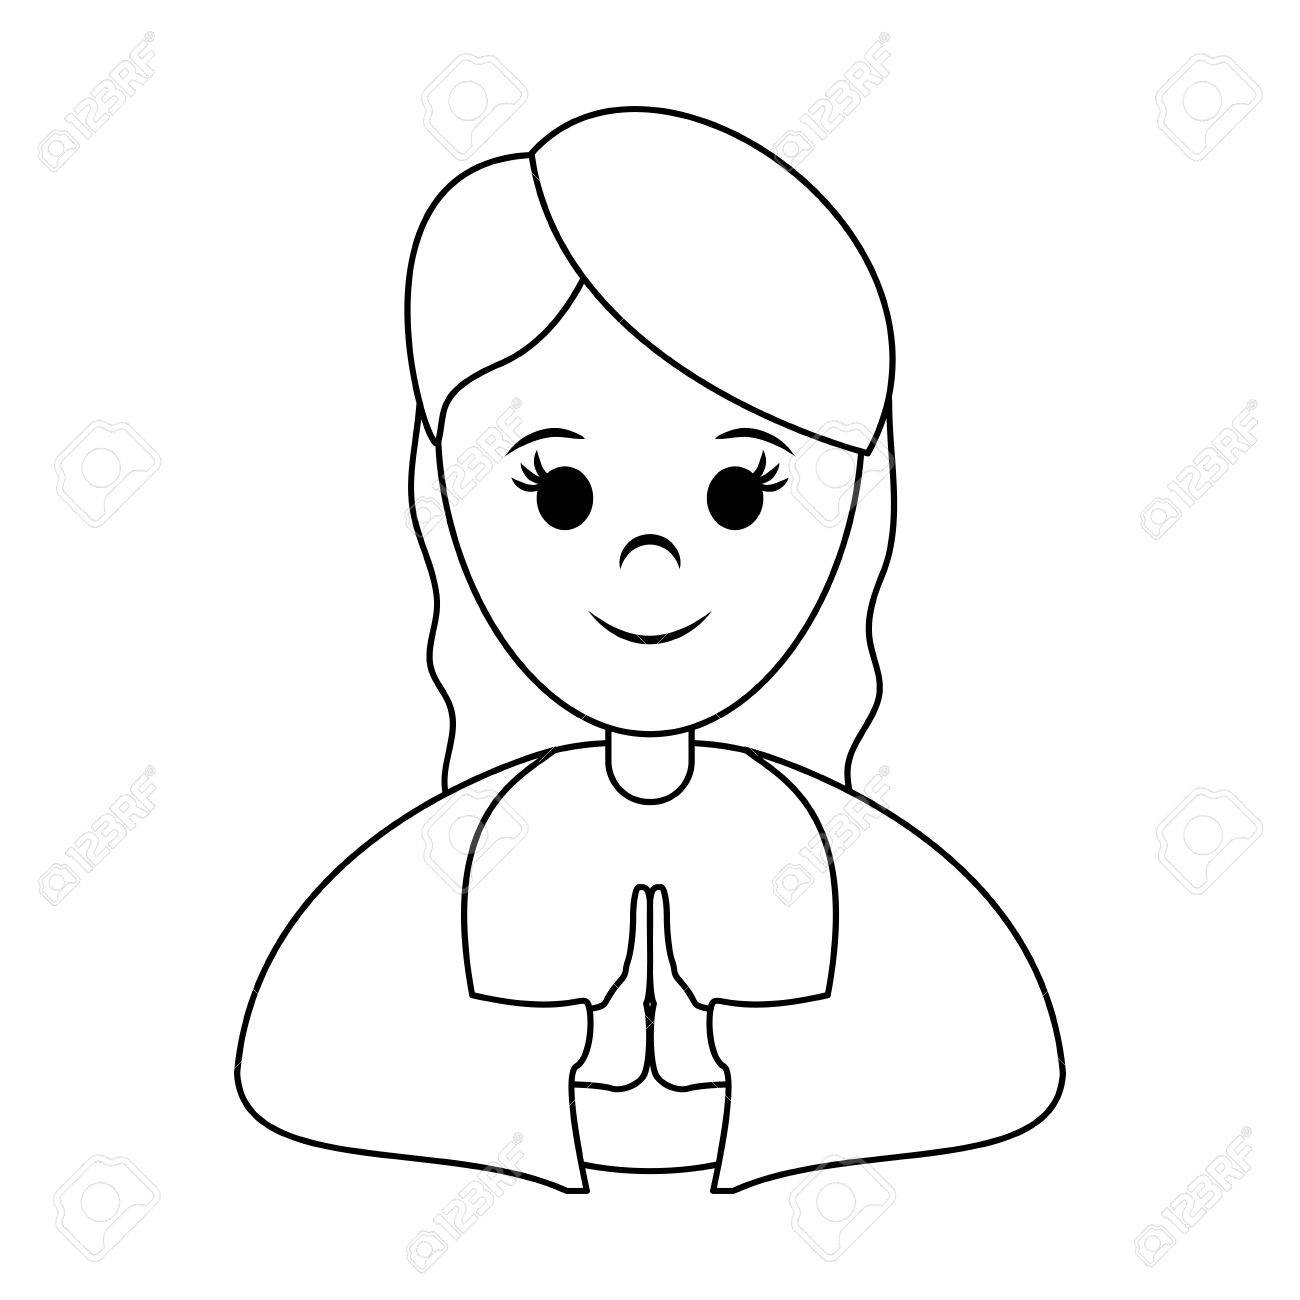 1300x1300 Woman Praying Wearing Tunic Cute Cartoon Icon Image Vector